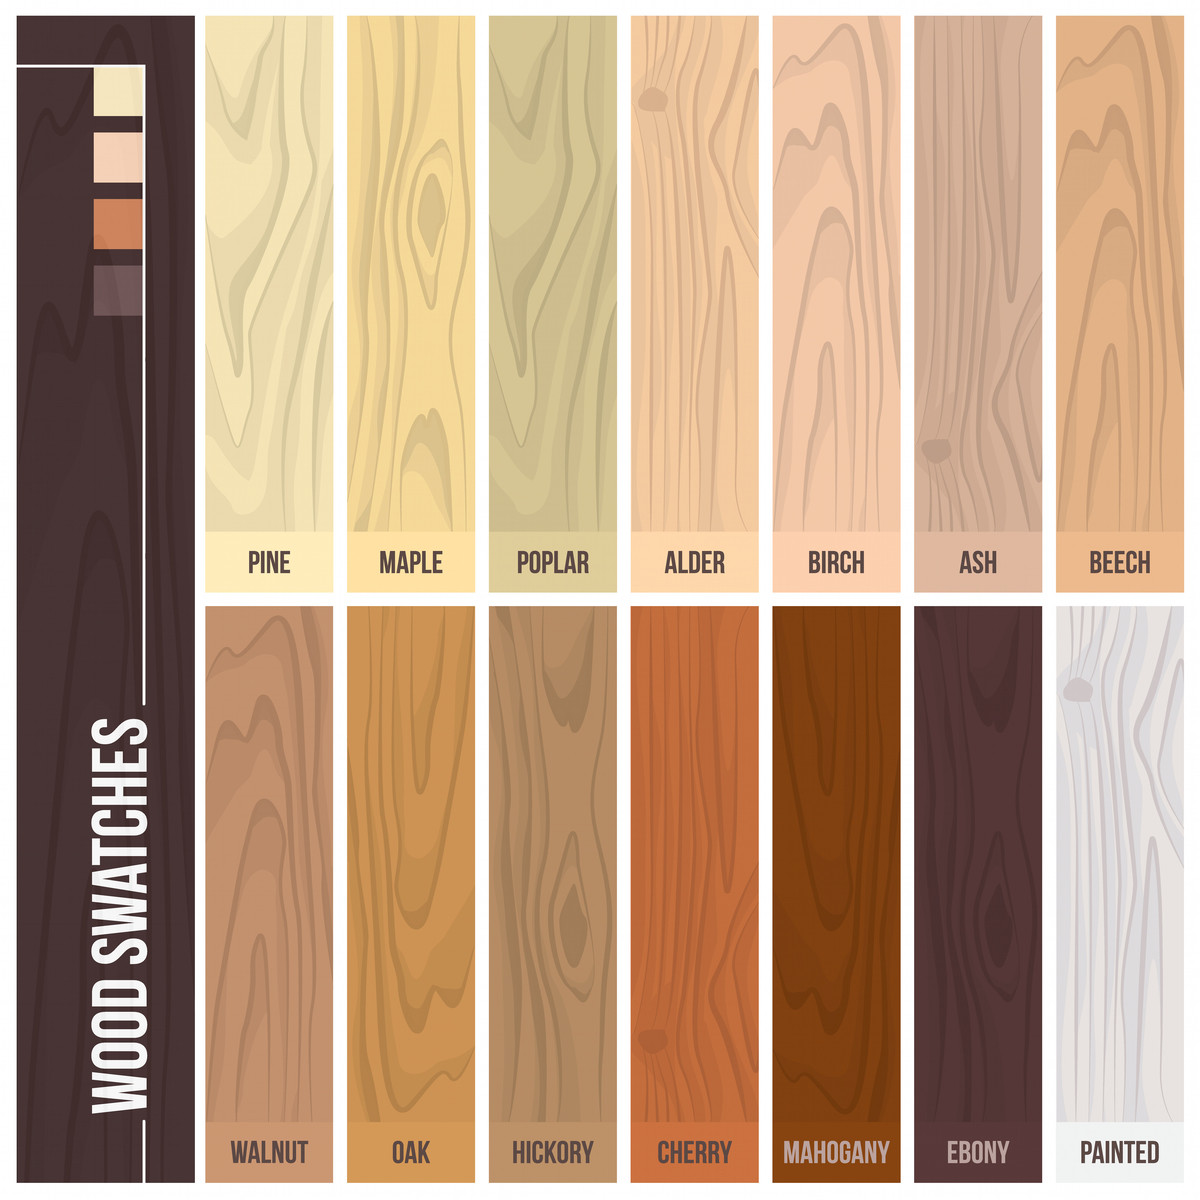 oak or maple hardwood floors which is better of 12 types of hardwood flooring species styles edging dimensions pertaining to types of hardwood flooring illustrated guide